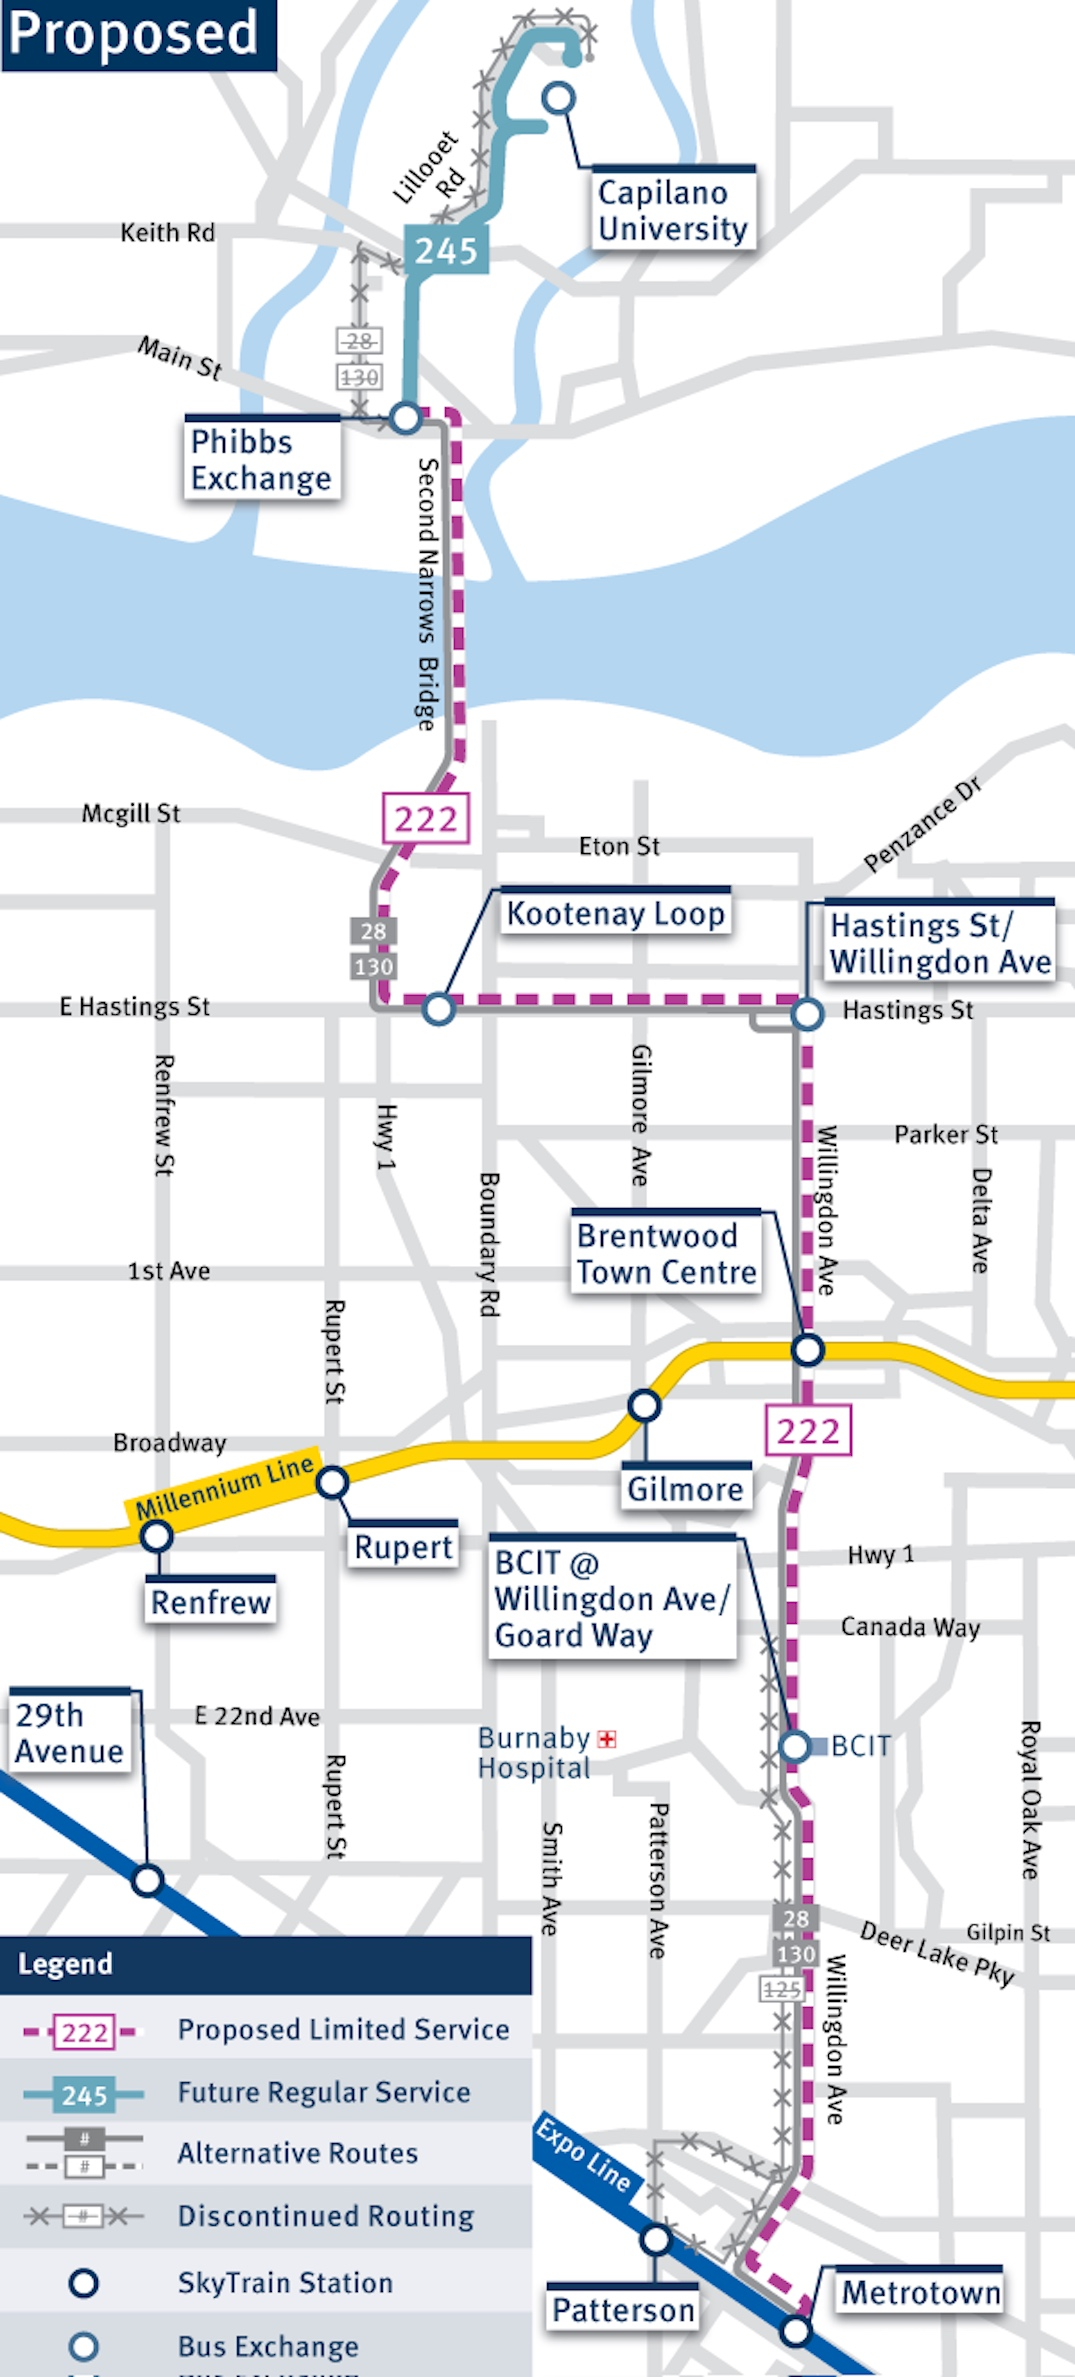 Translink Proposes 2 New Major Bus Routes Connecting To